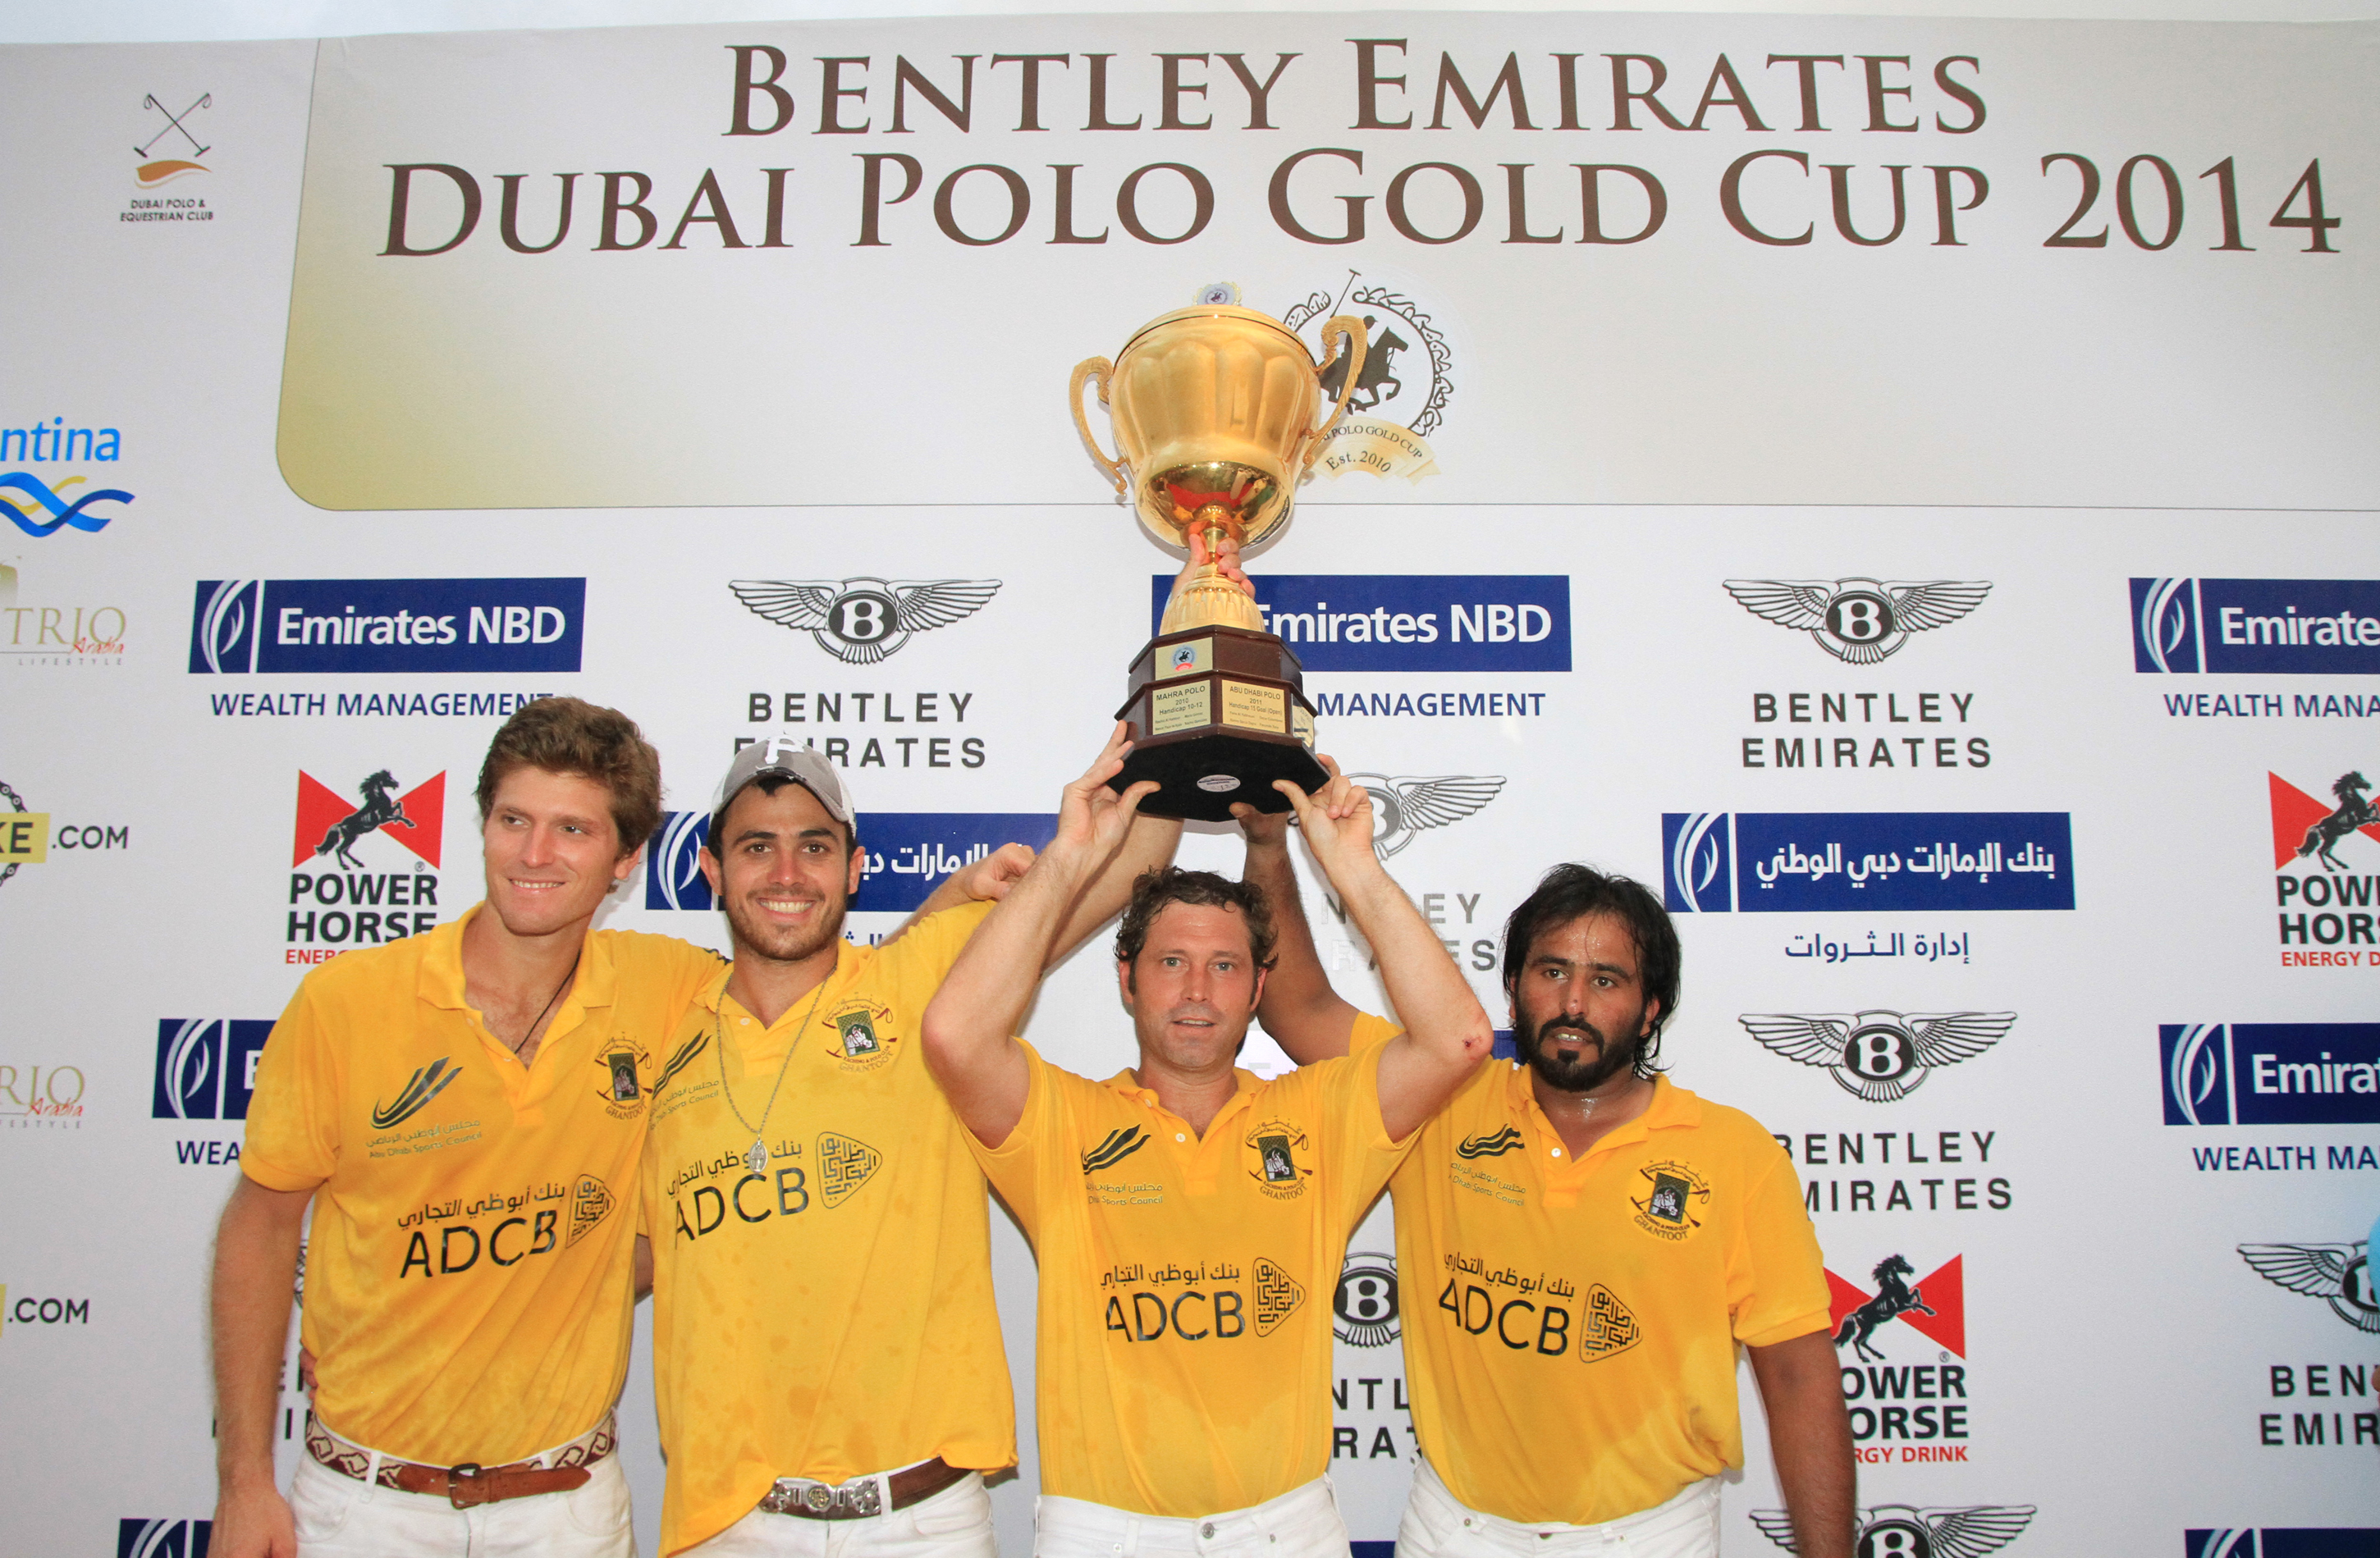 Horse Times Egypt: Equestrian Magazine :News :GHANTOOT ADCB WINS THE BENTLEY EMIRATES GOLD CUP